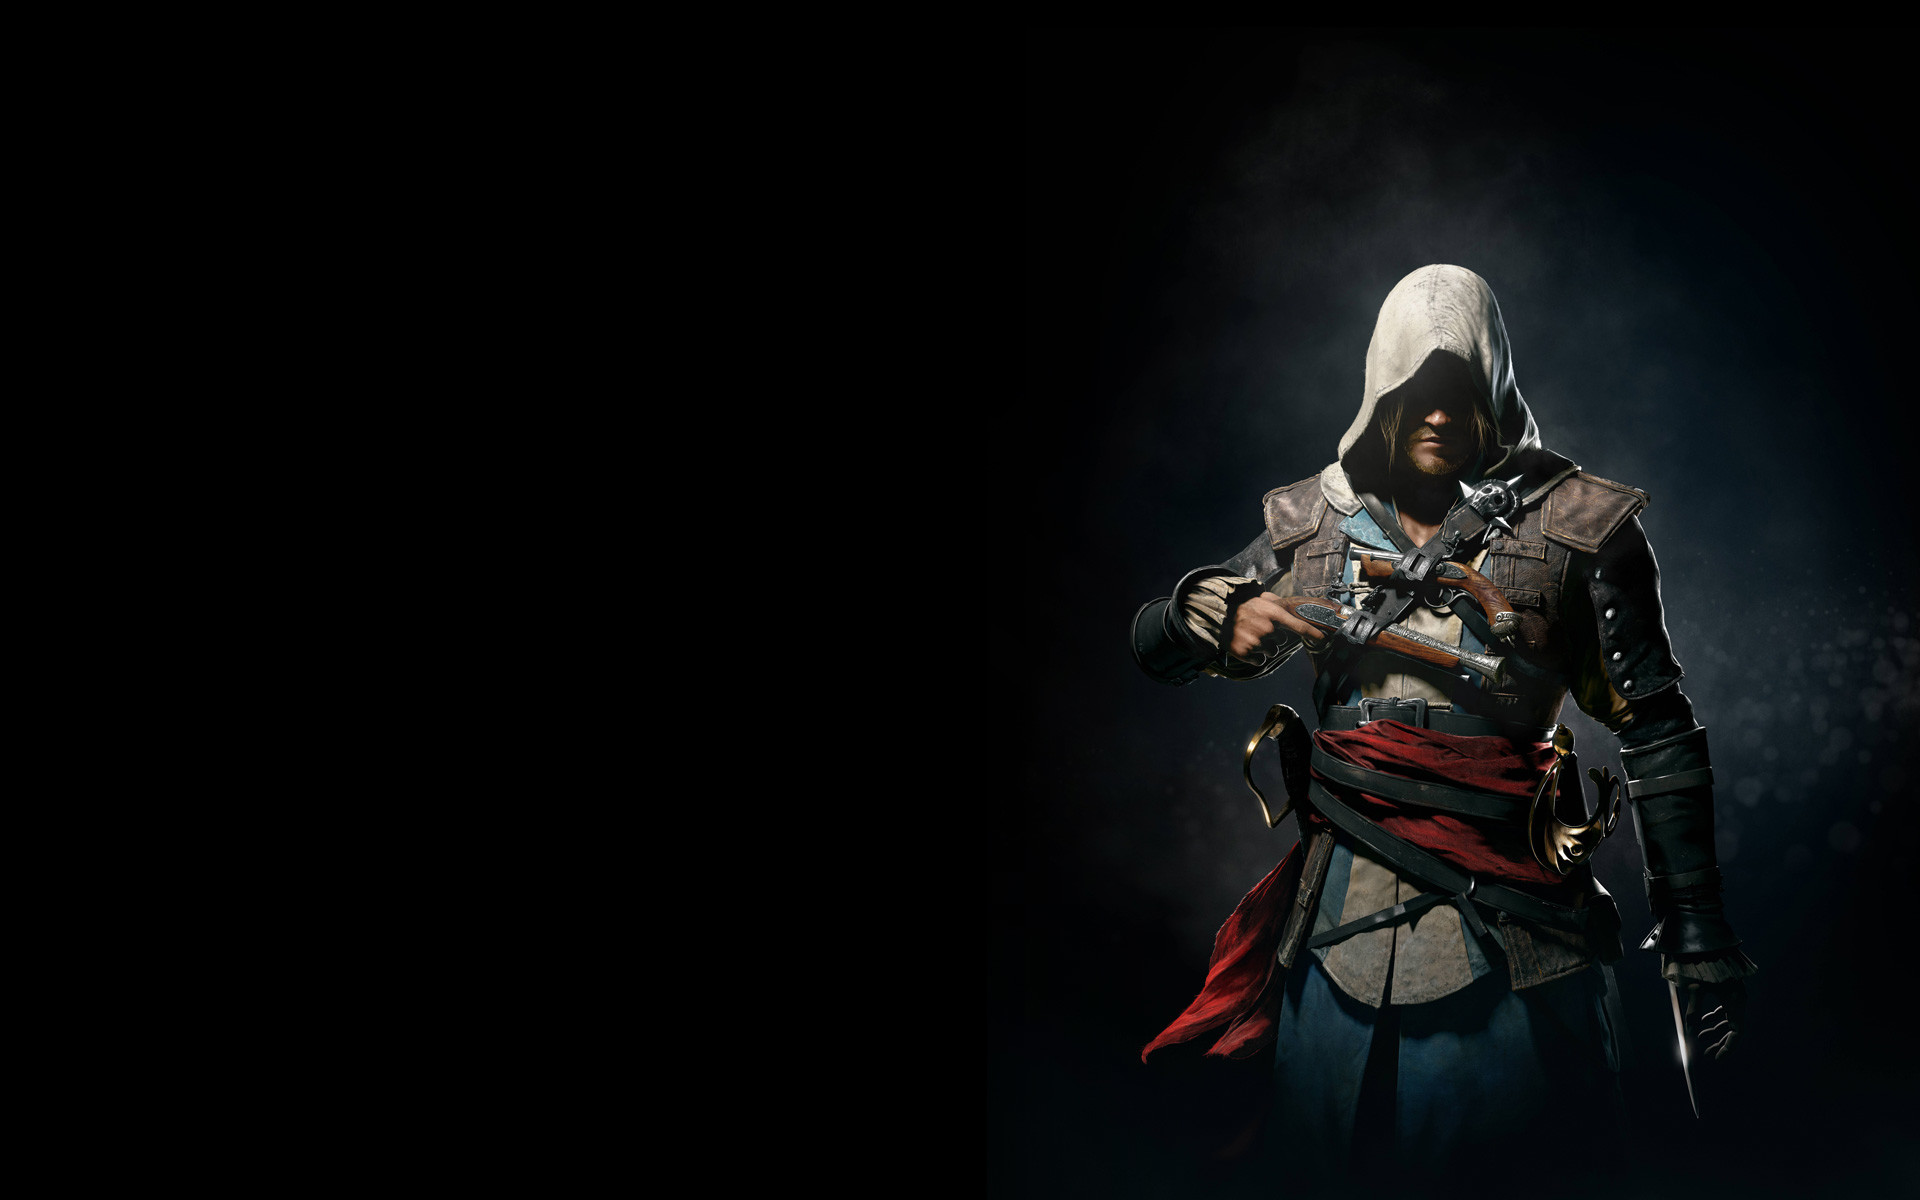 Free Assassin's Creed IV: Black Flag Wallpaper in 1920×1200